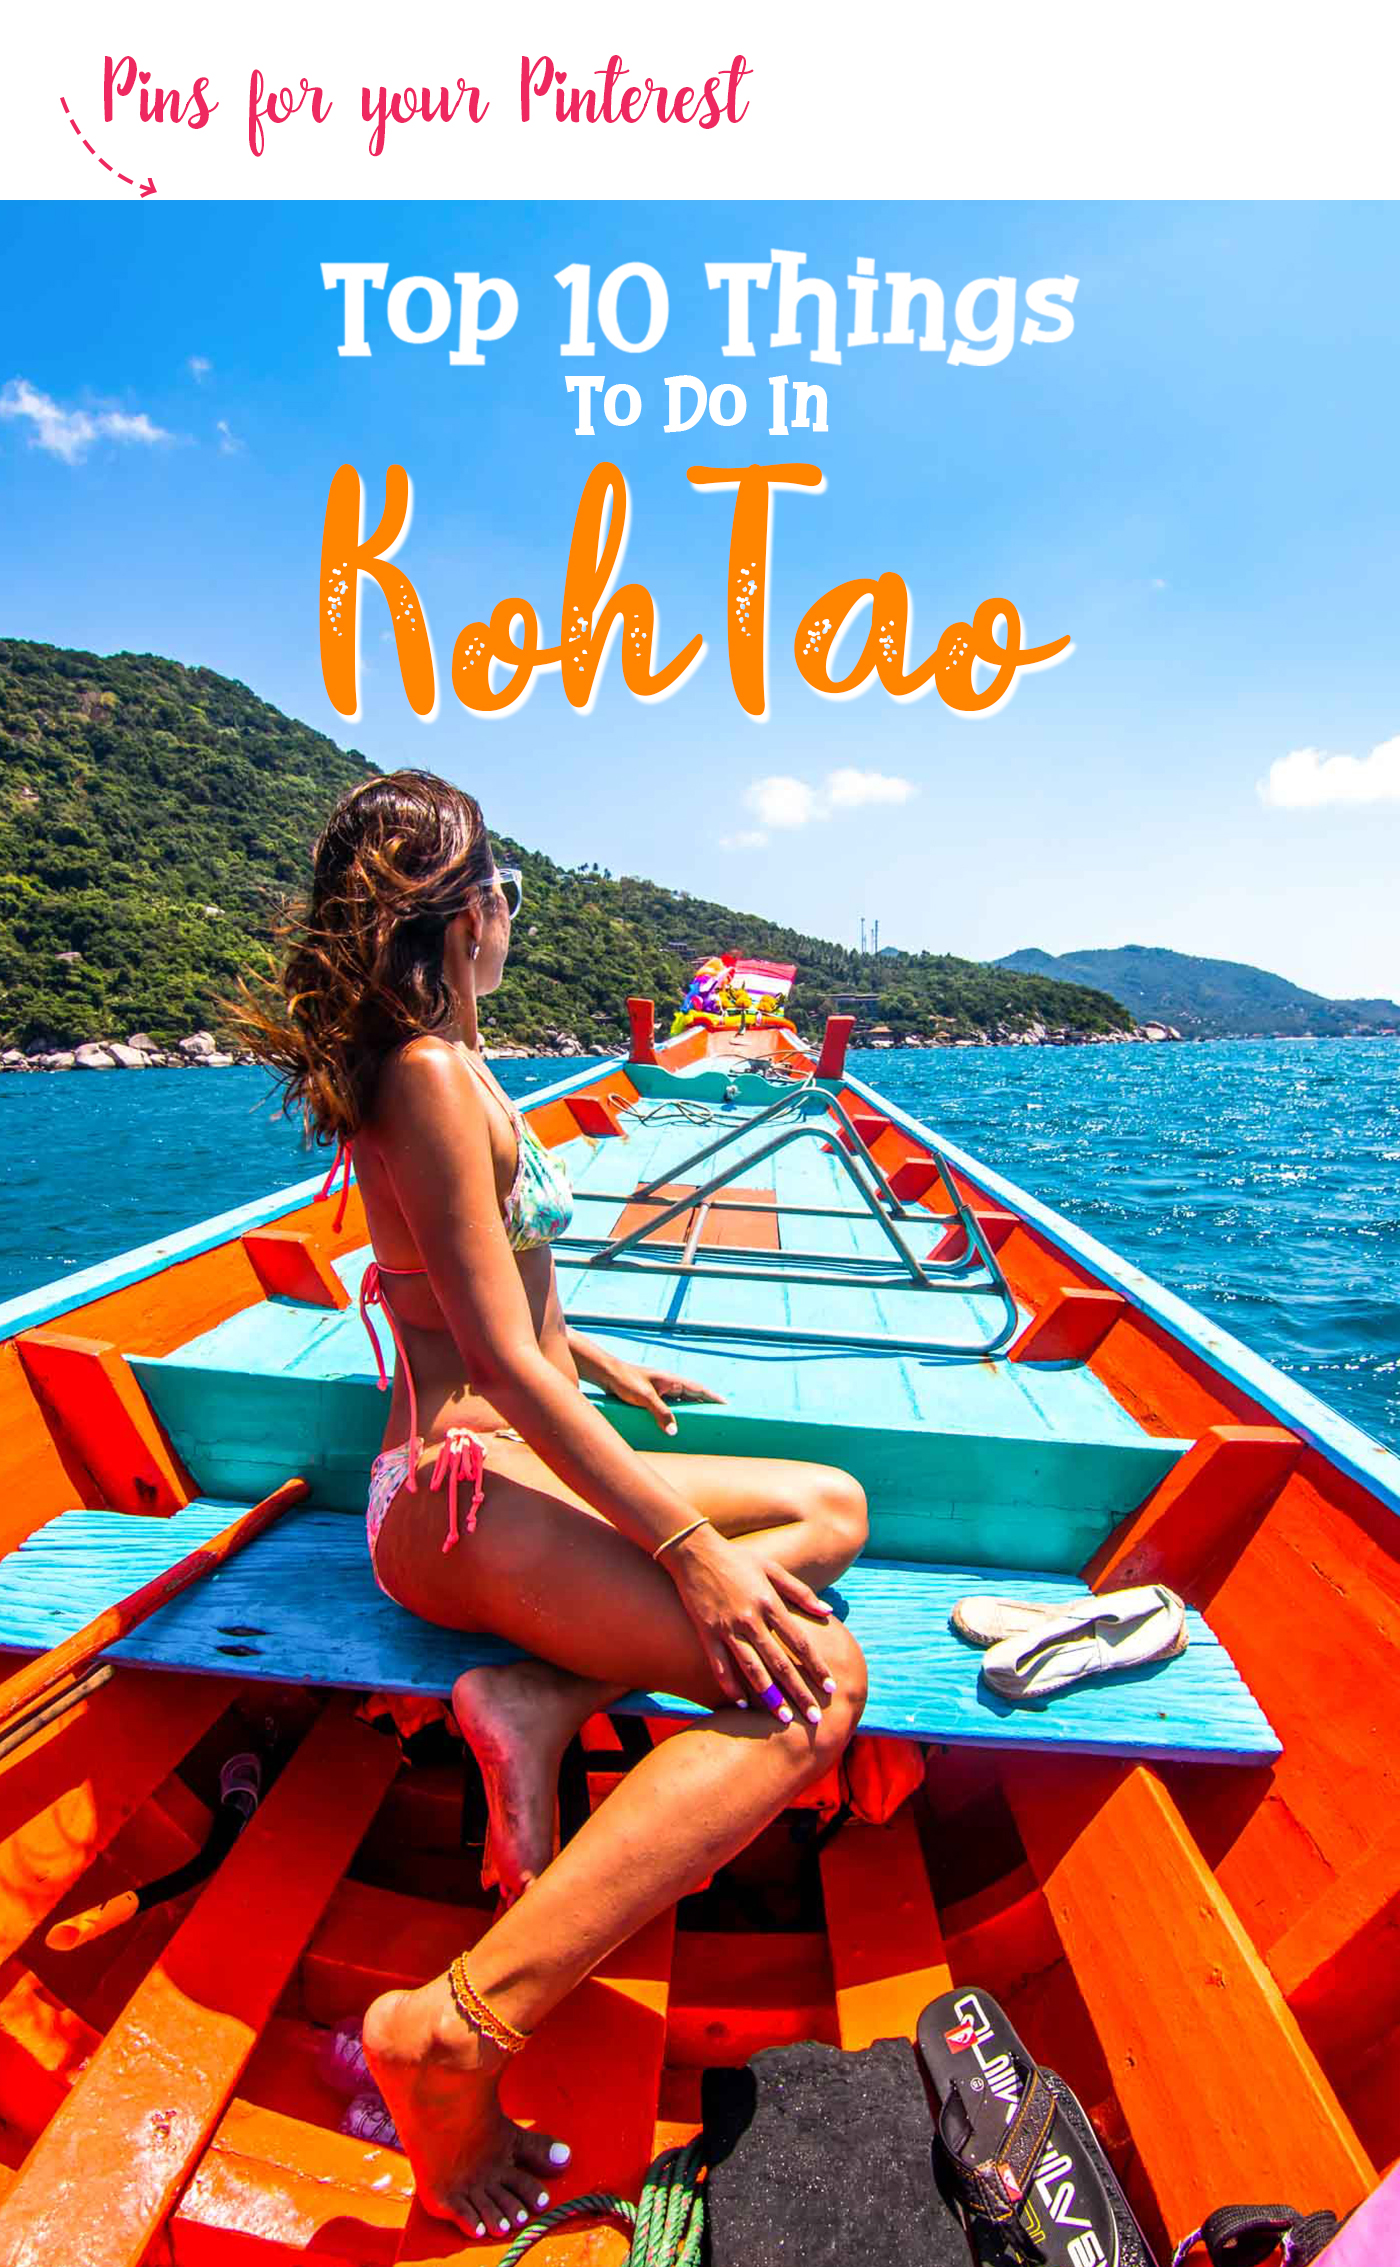 Thailand_Koh_Tao_Island_Andaman_Sea_Scuba_Diving_Trapeze_Things_To_Do_Blog_Travel_Tips_Surat_Thani_Full_Moon_Party_Long_Tail_Boat_Bangkok_Indian_Blogger